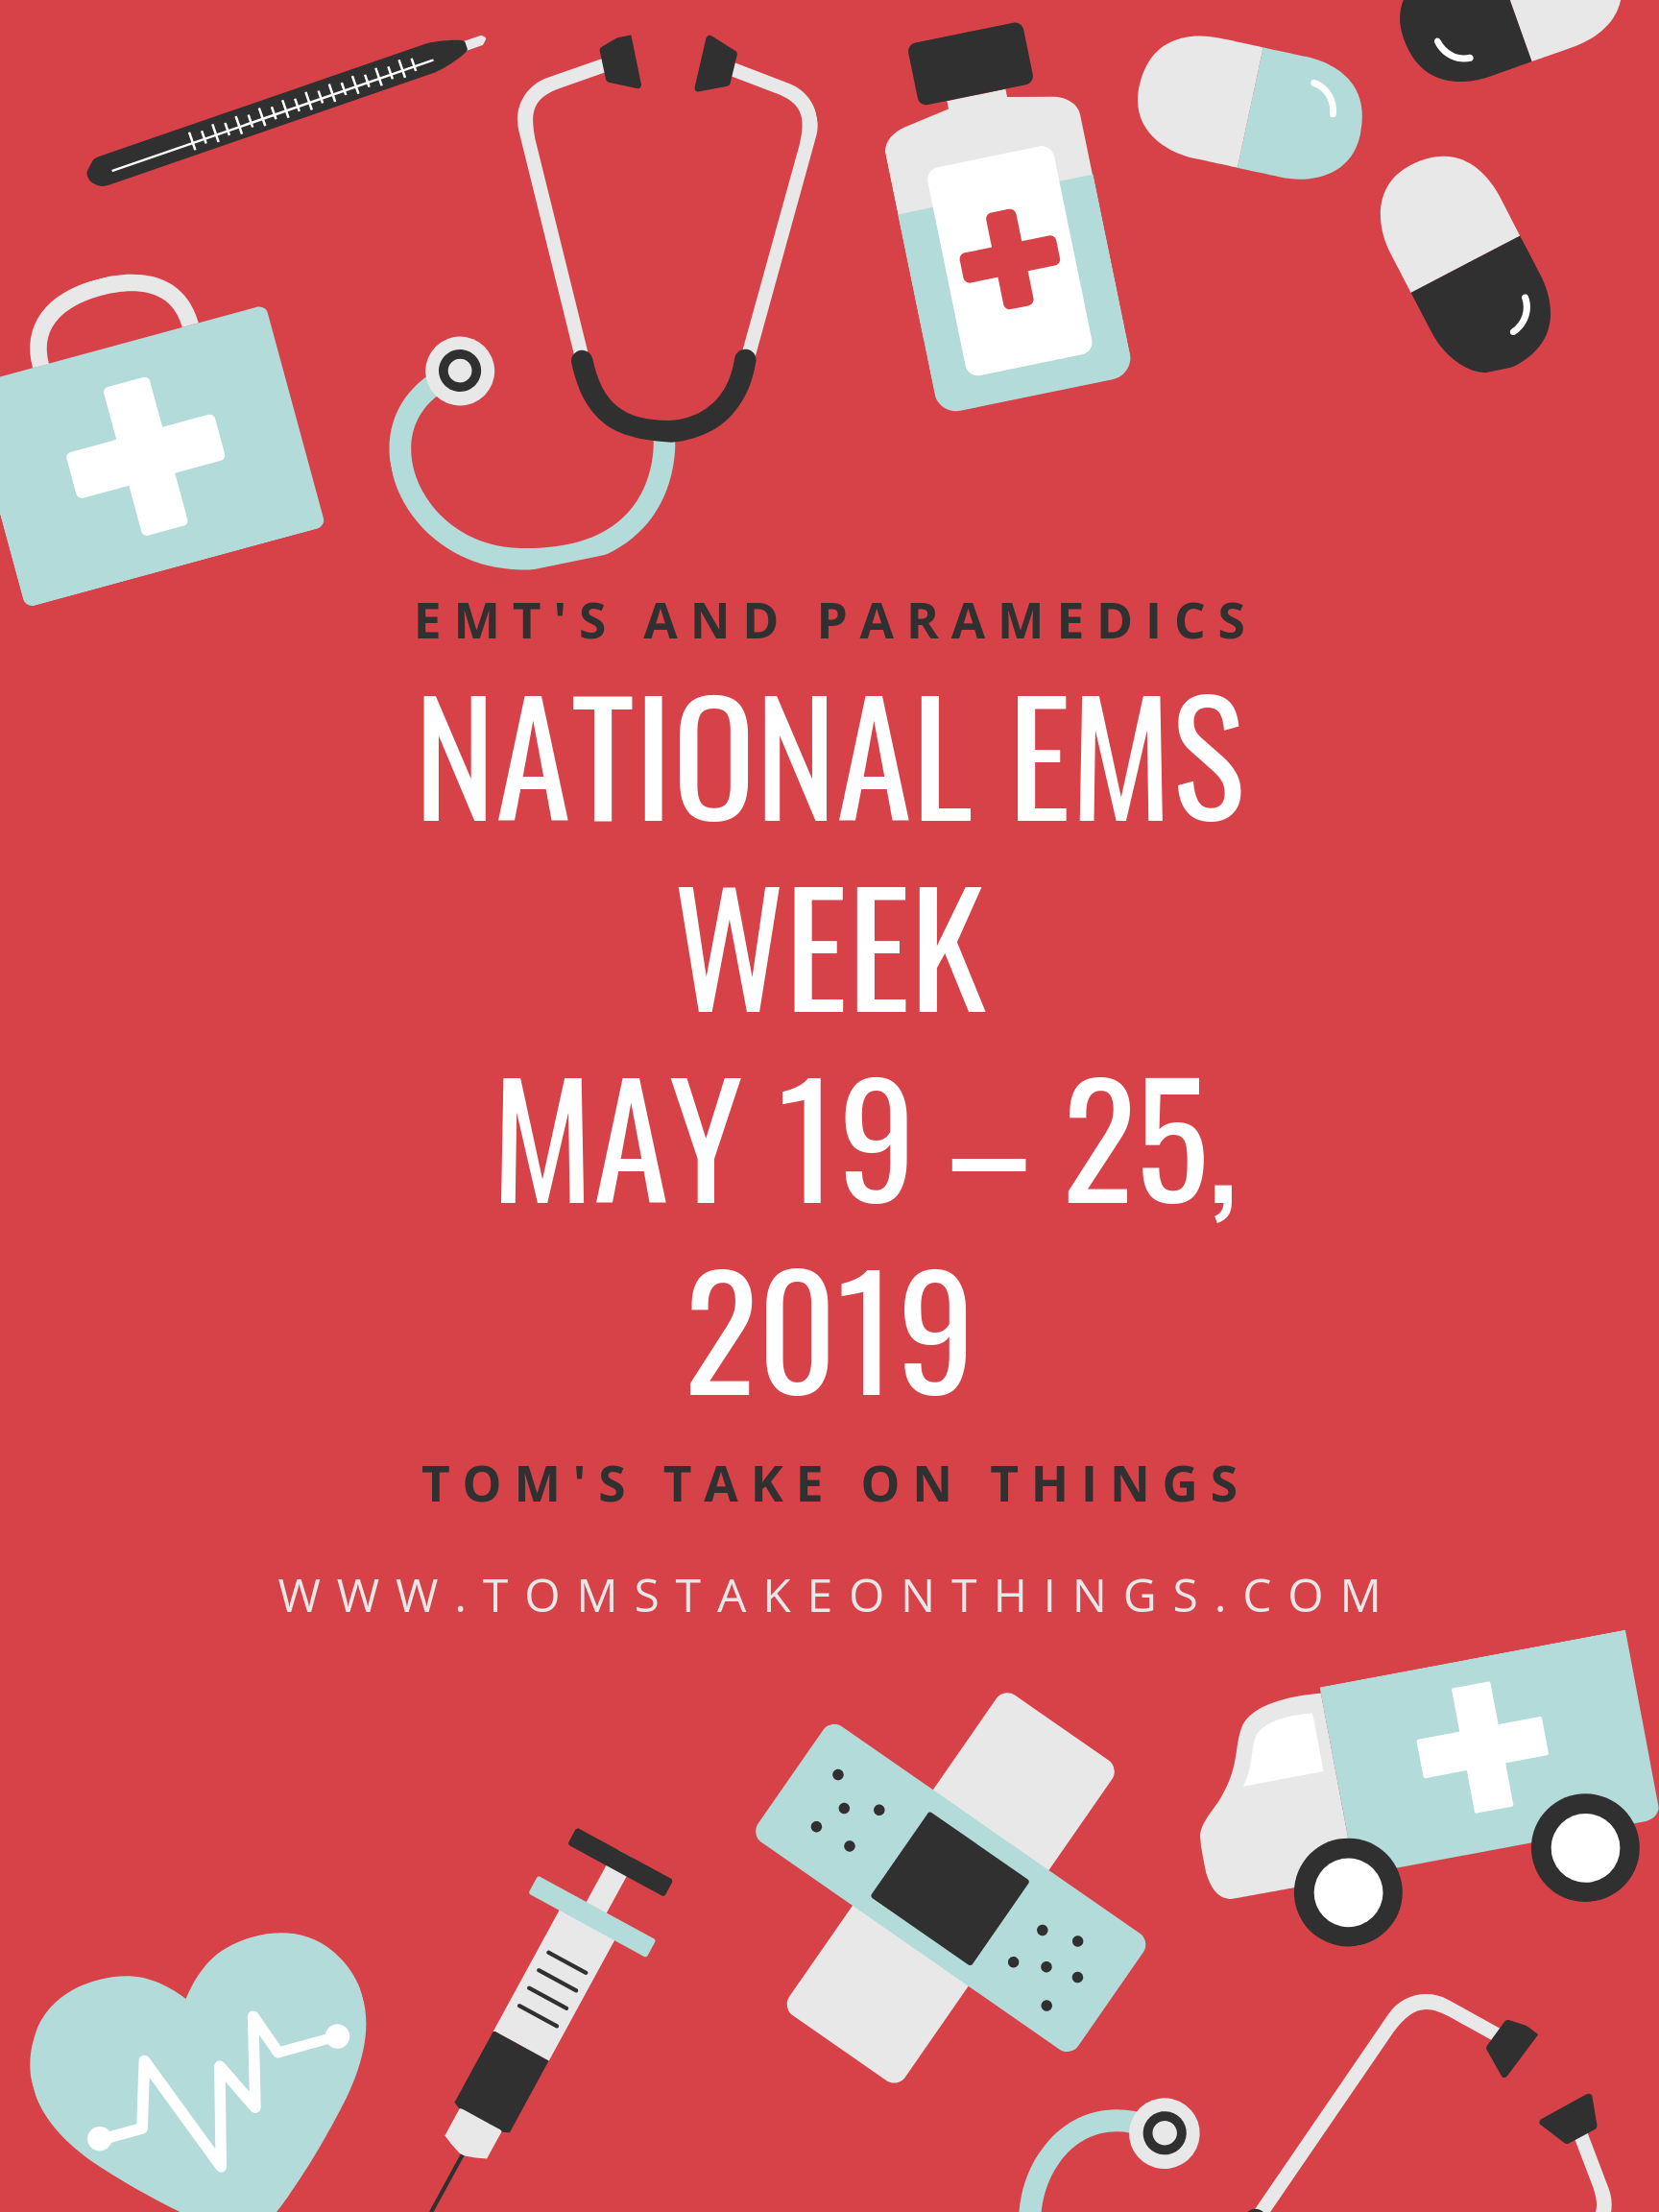 National Ems Week May 19 25 2019 Tom S Take On Things